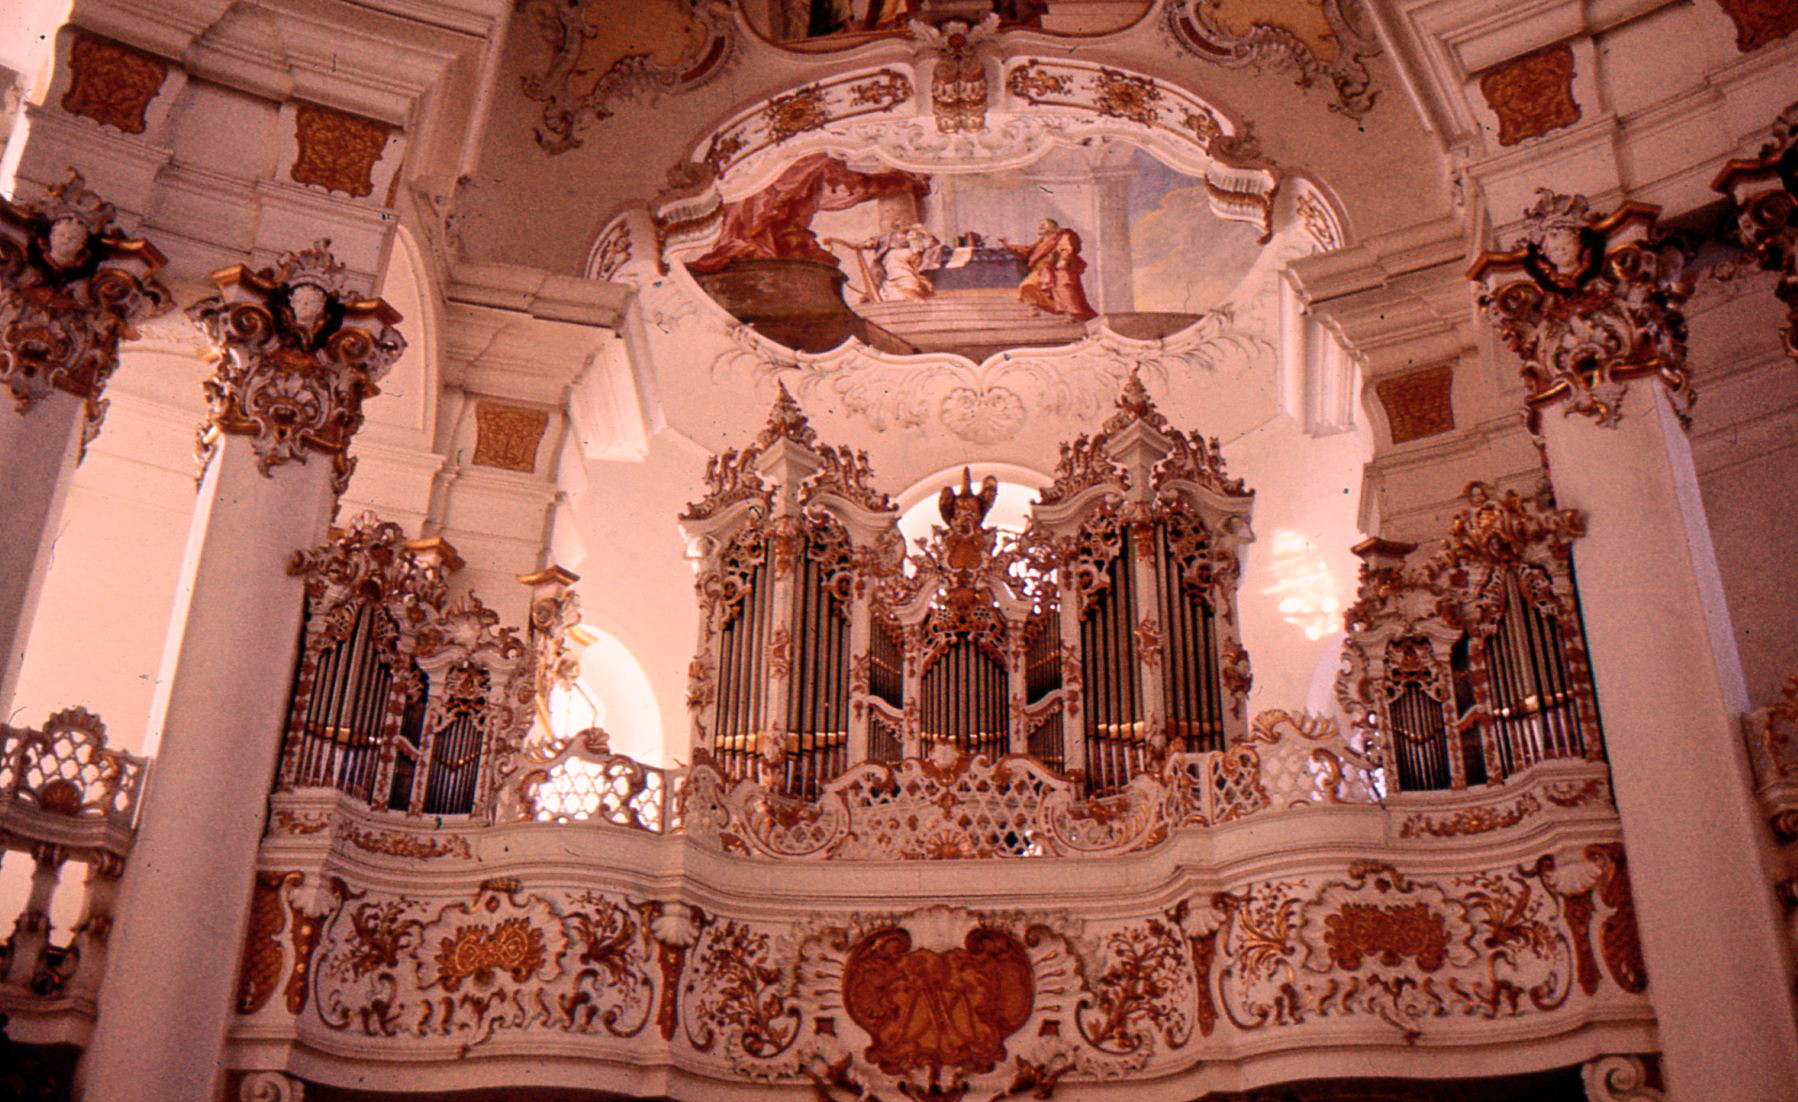 Delicate tracery based on leaves and plants graces the organ and loft.